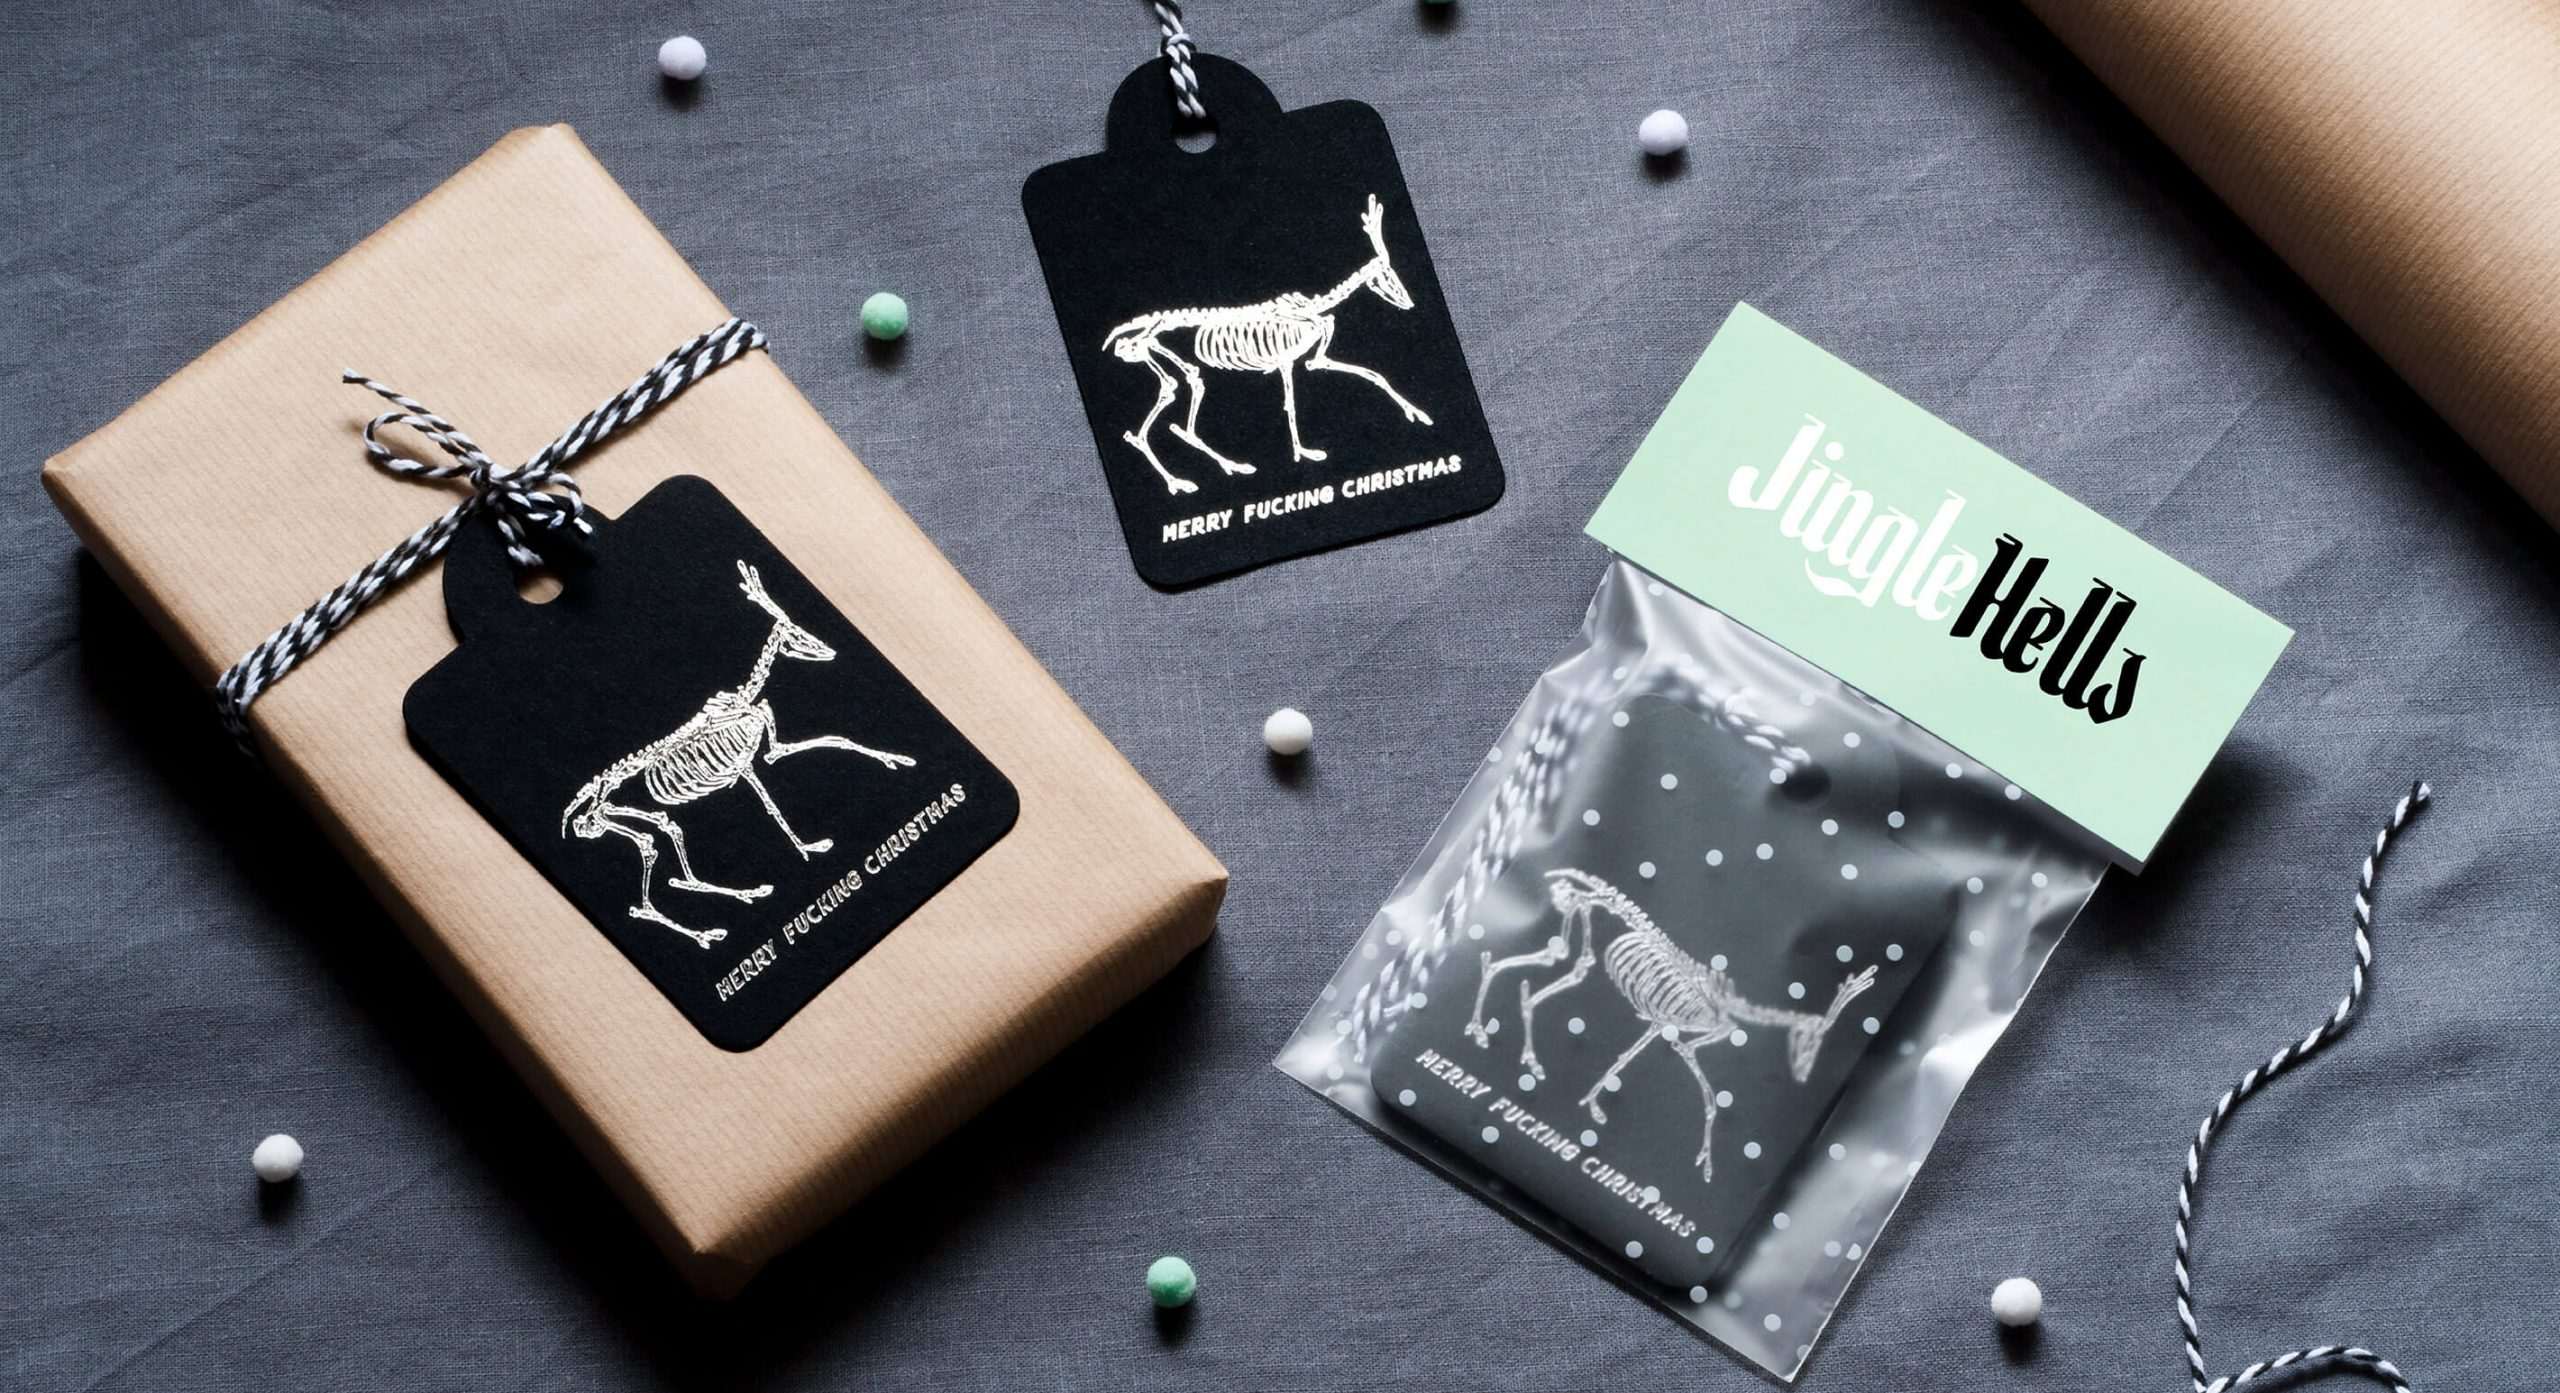 Product flaylay showing alternative foiled swingtags and packaging. The tags feature skeletons of reindeers and say 'Merry Fucking Christmas